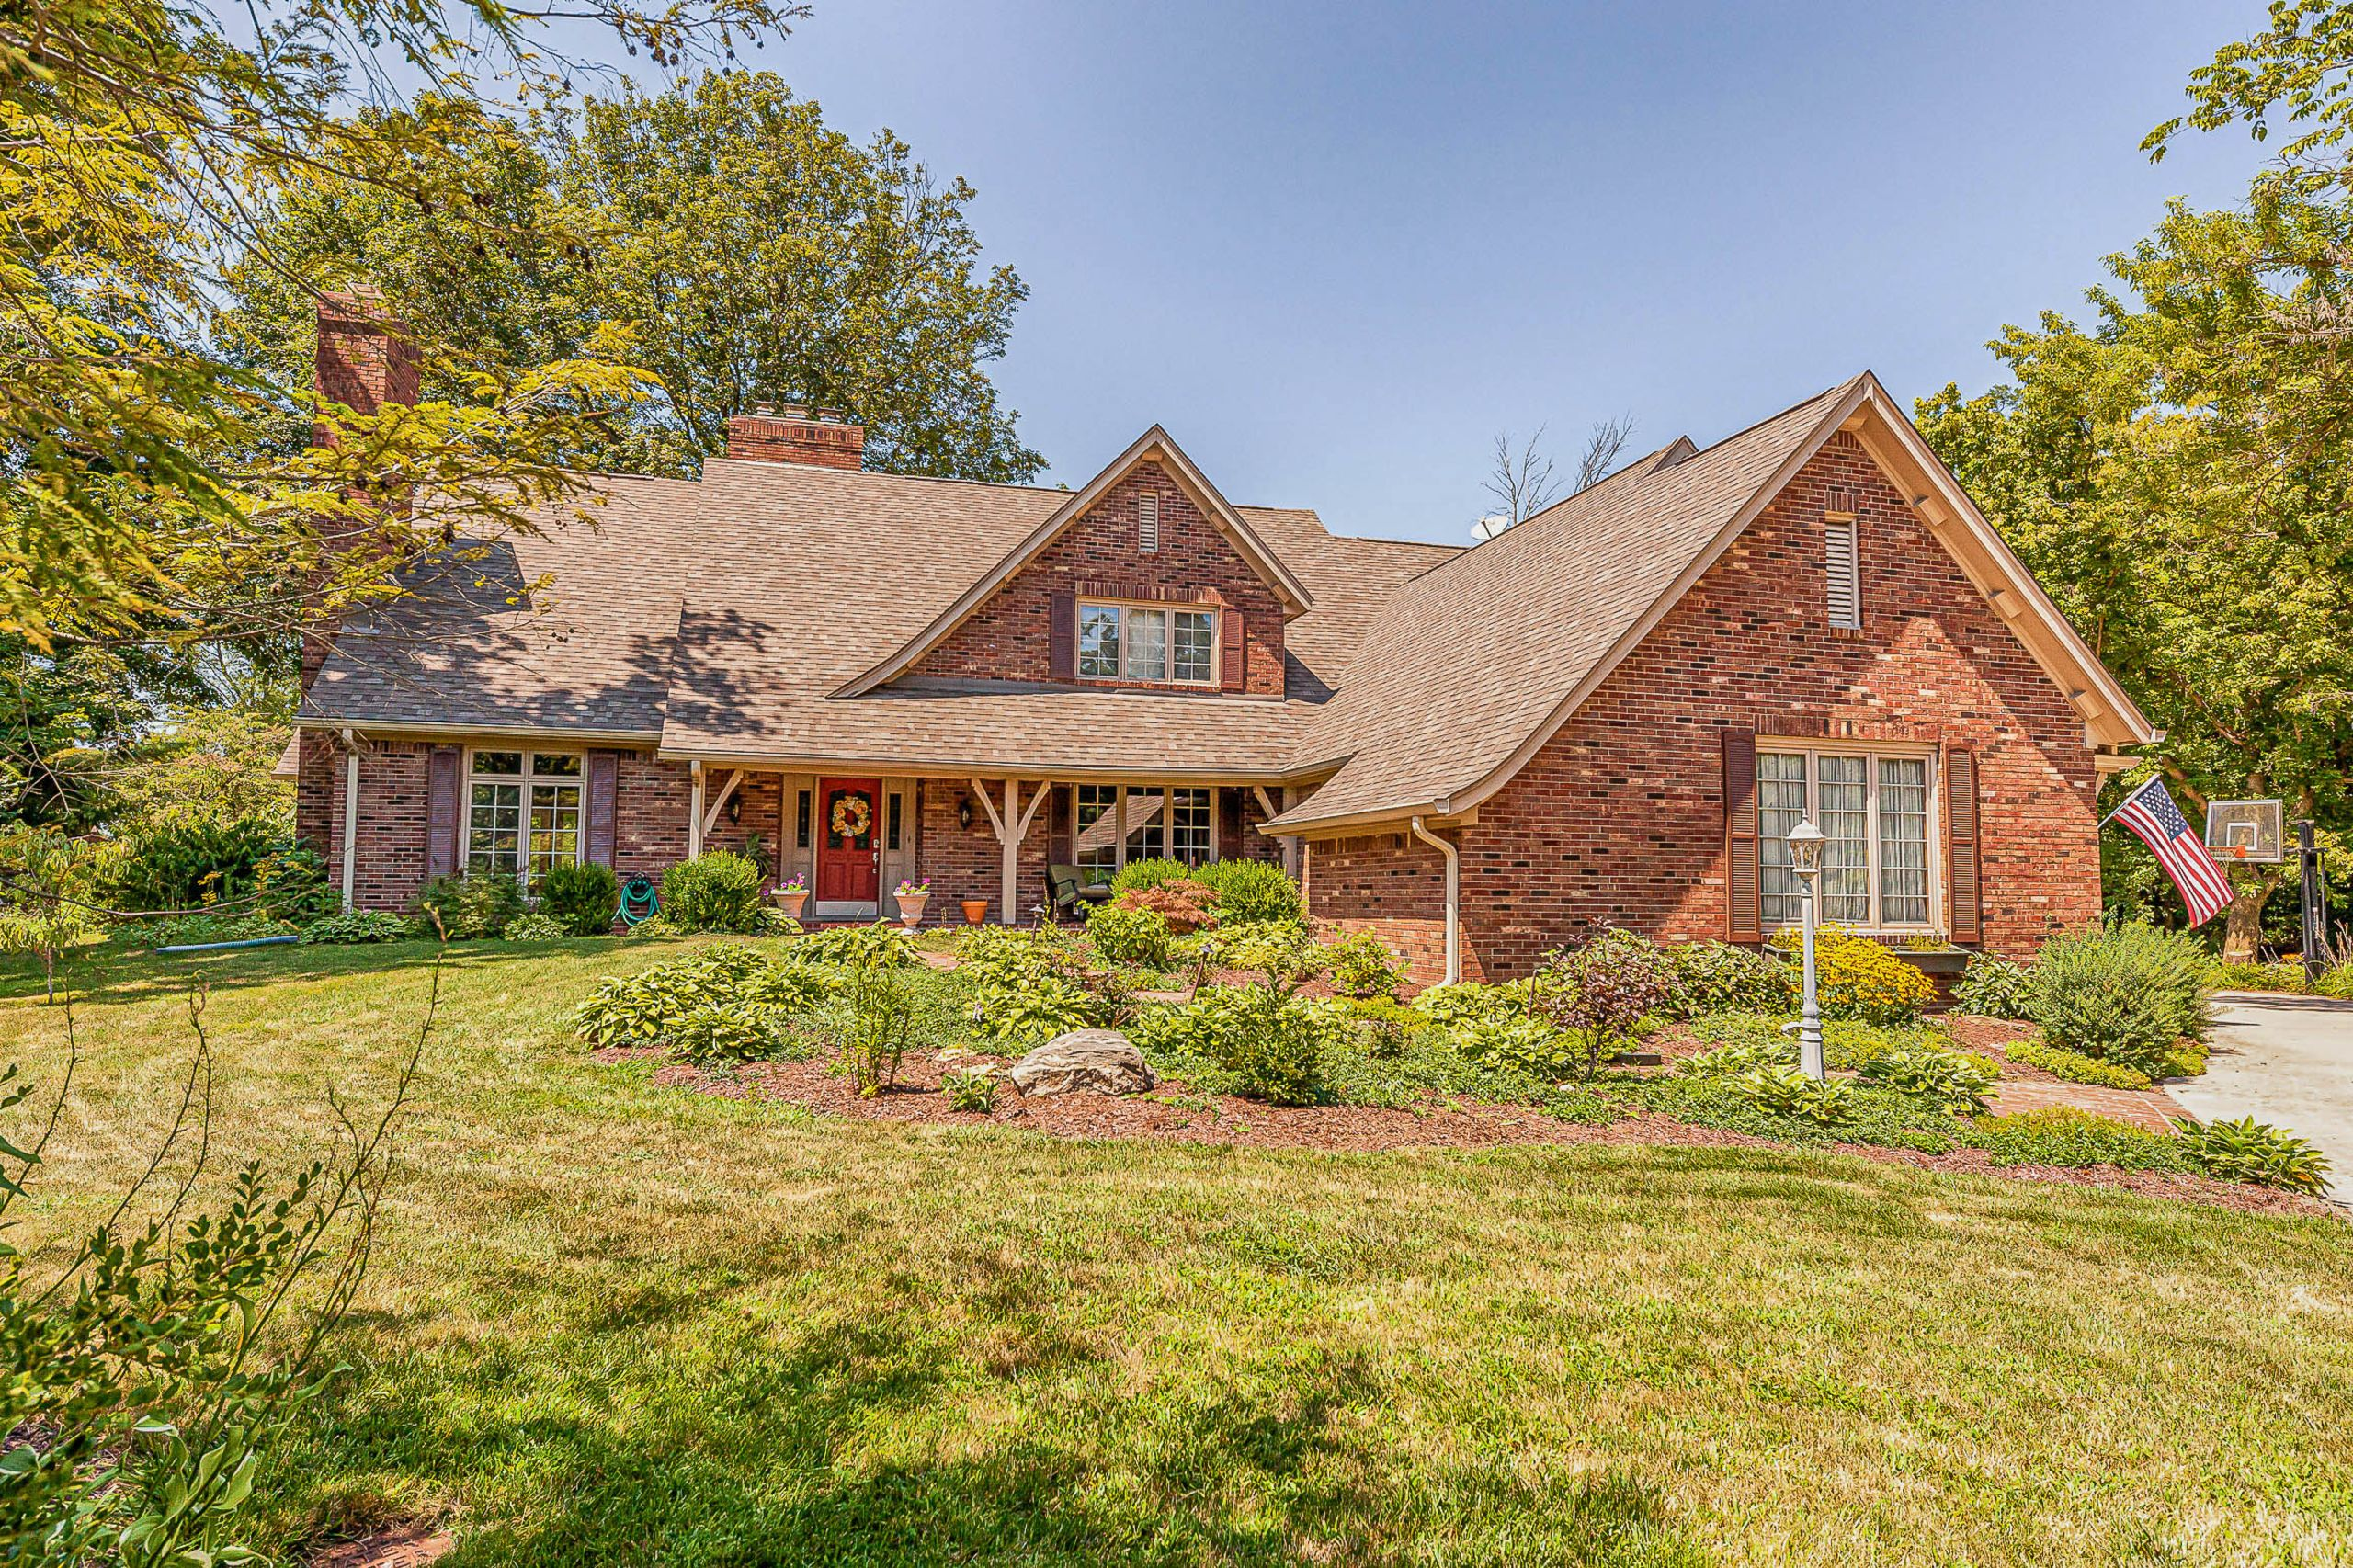 PENDING! 9228 Seascape Drive, Indianapolis, IN 46256. $499,900. 5 bed/4 bath home with almost 6000 sq. ft!